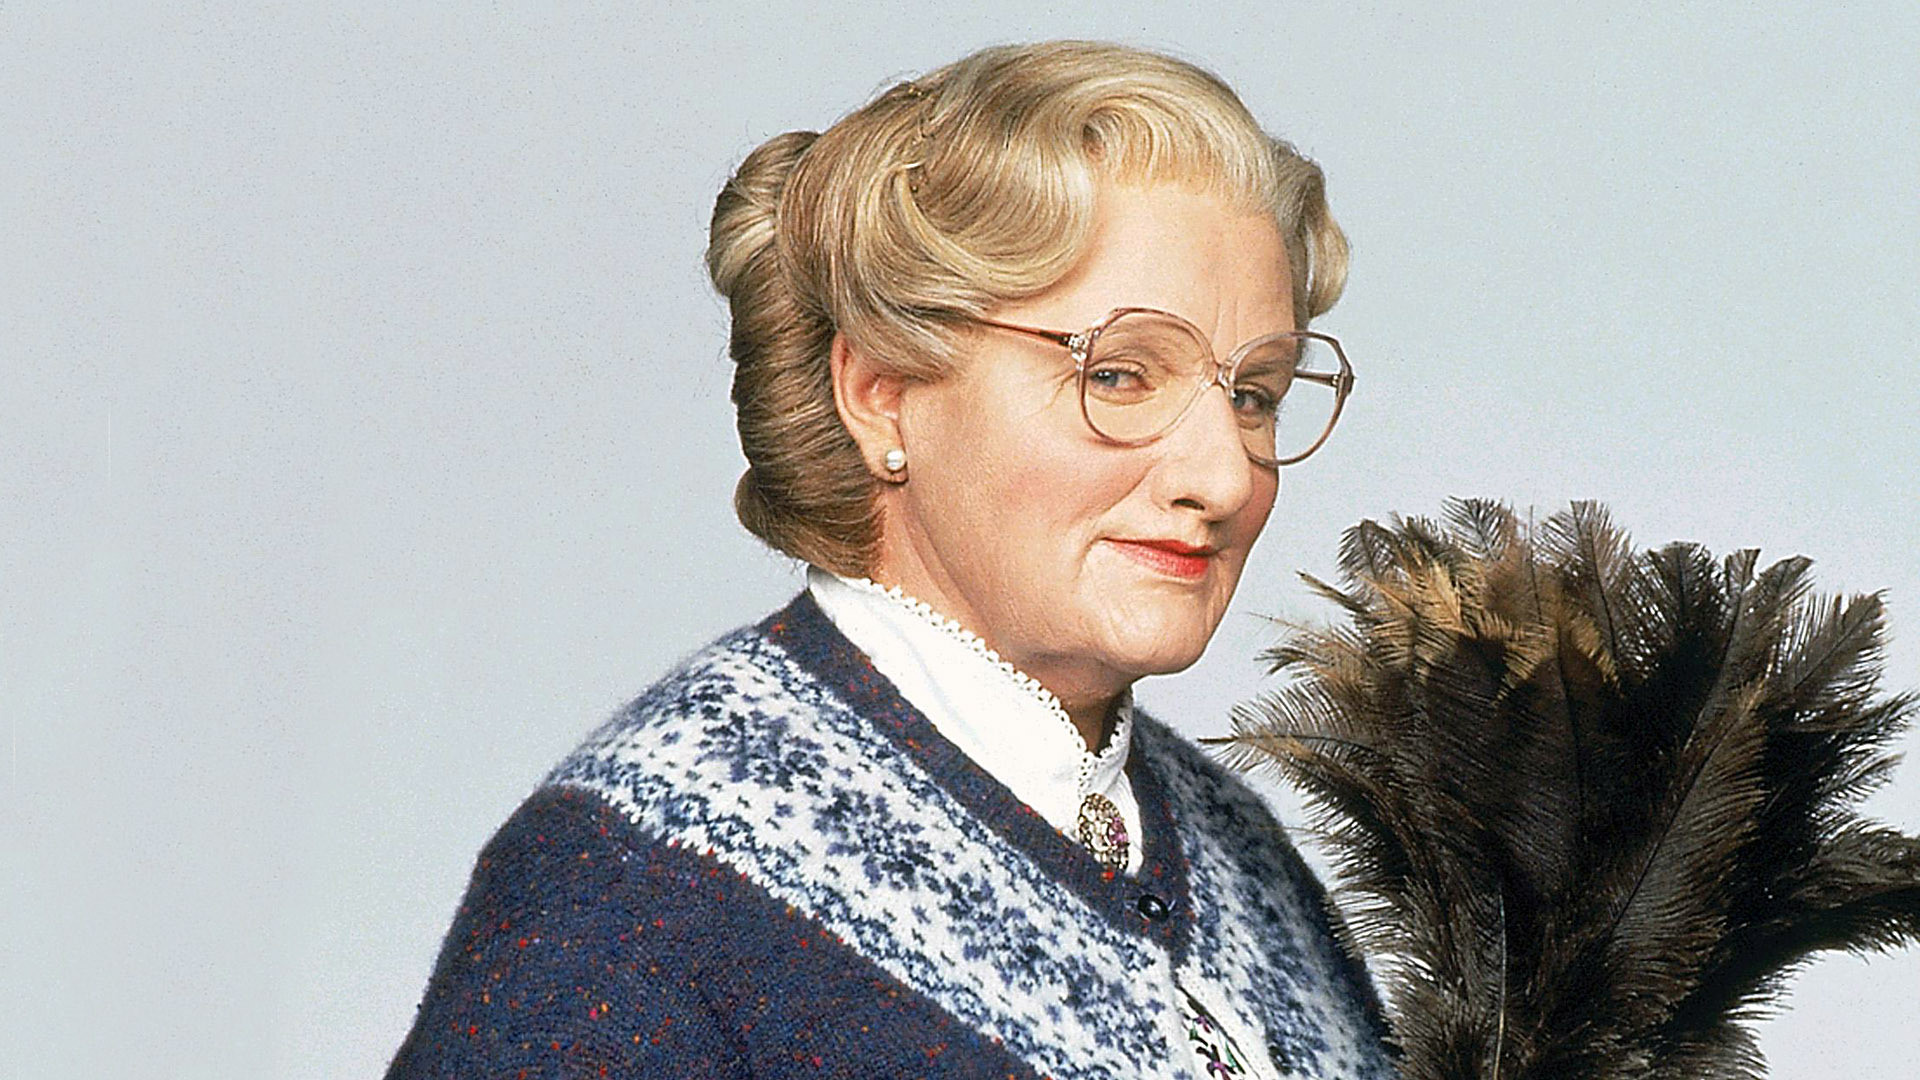 Nice wallpapers Mrs. Doubtfire 1920x1080px